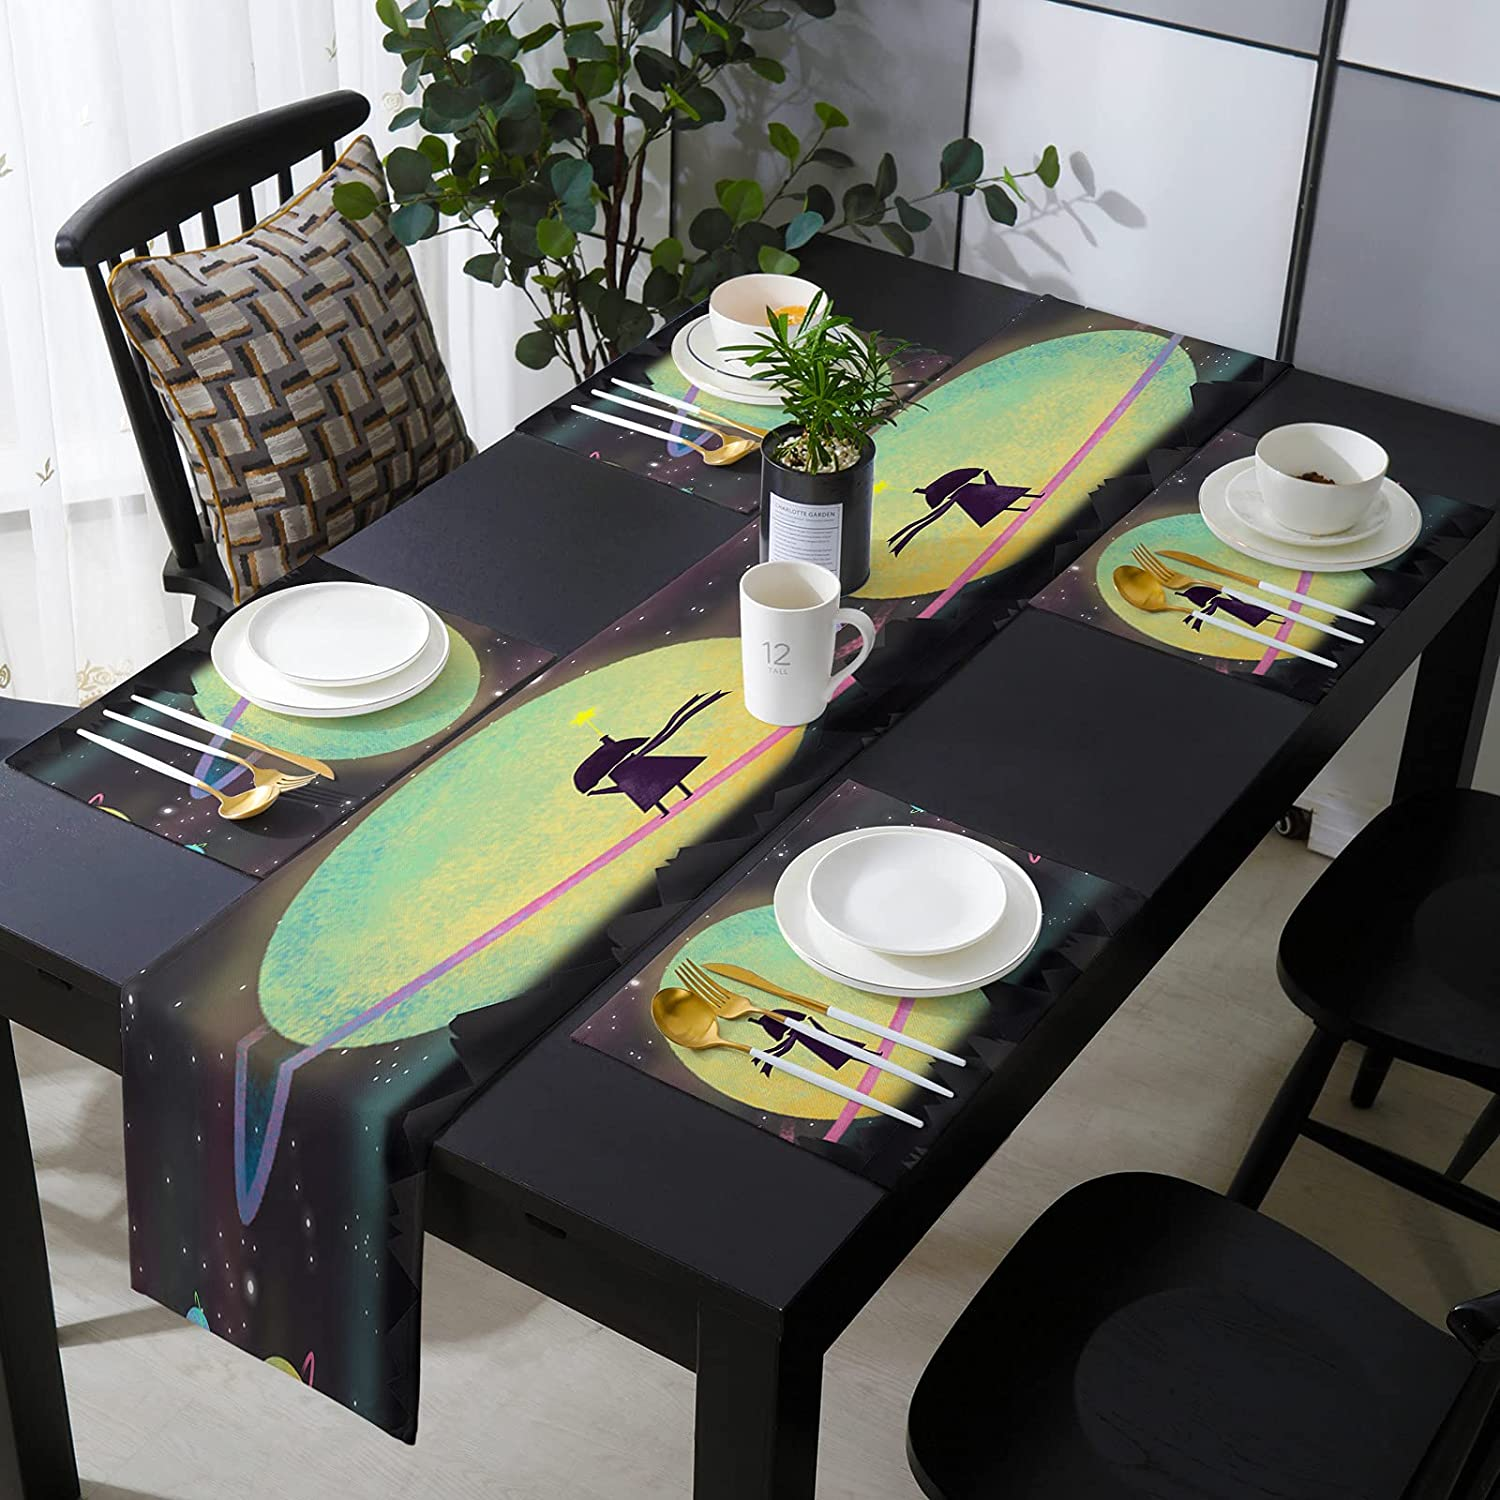 13 x 90 Inch Table shop Runner with Popular Fa Placemats - 6 Halloween of Set